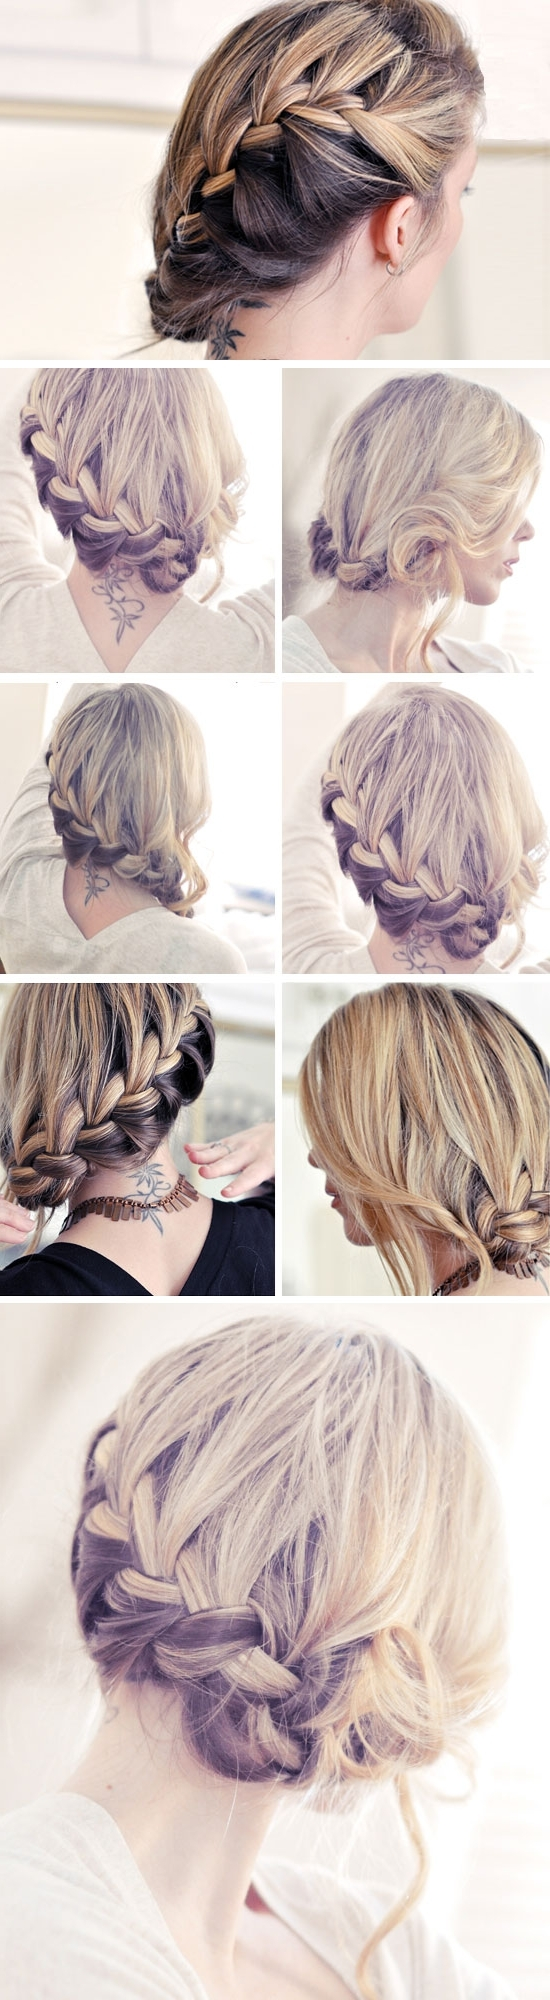 Easy Diy Wedding Hairstyles For Long Hair Intended For Widely Used Diy Wedding Updos For Long Hair (View 5 of 15)